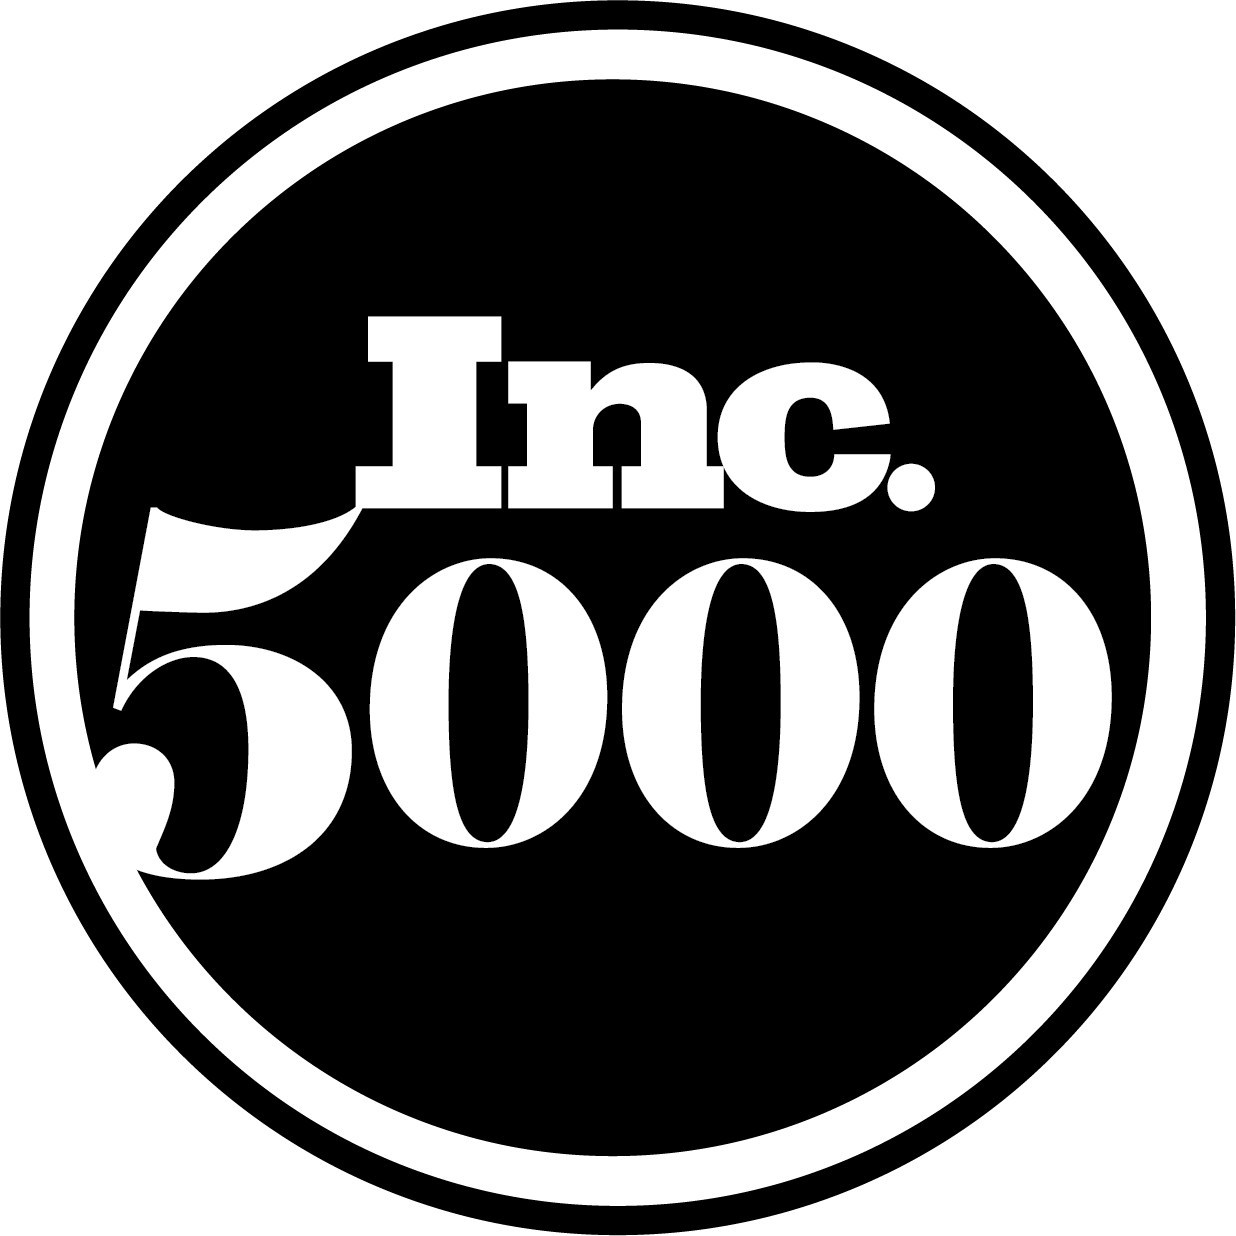 Siegfried Lands On The Inc 5000 List Of Fastest Growing Companies In The United States